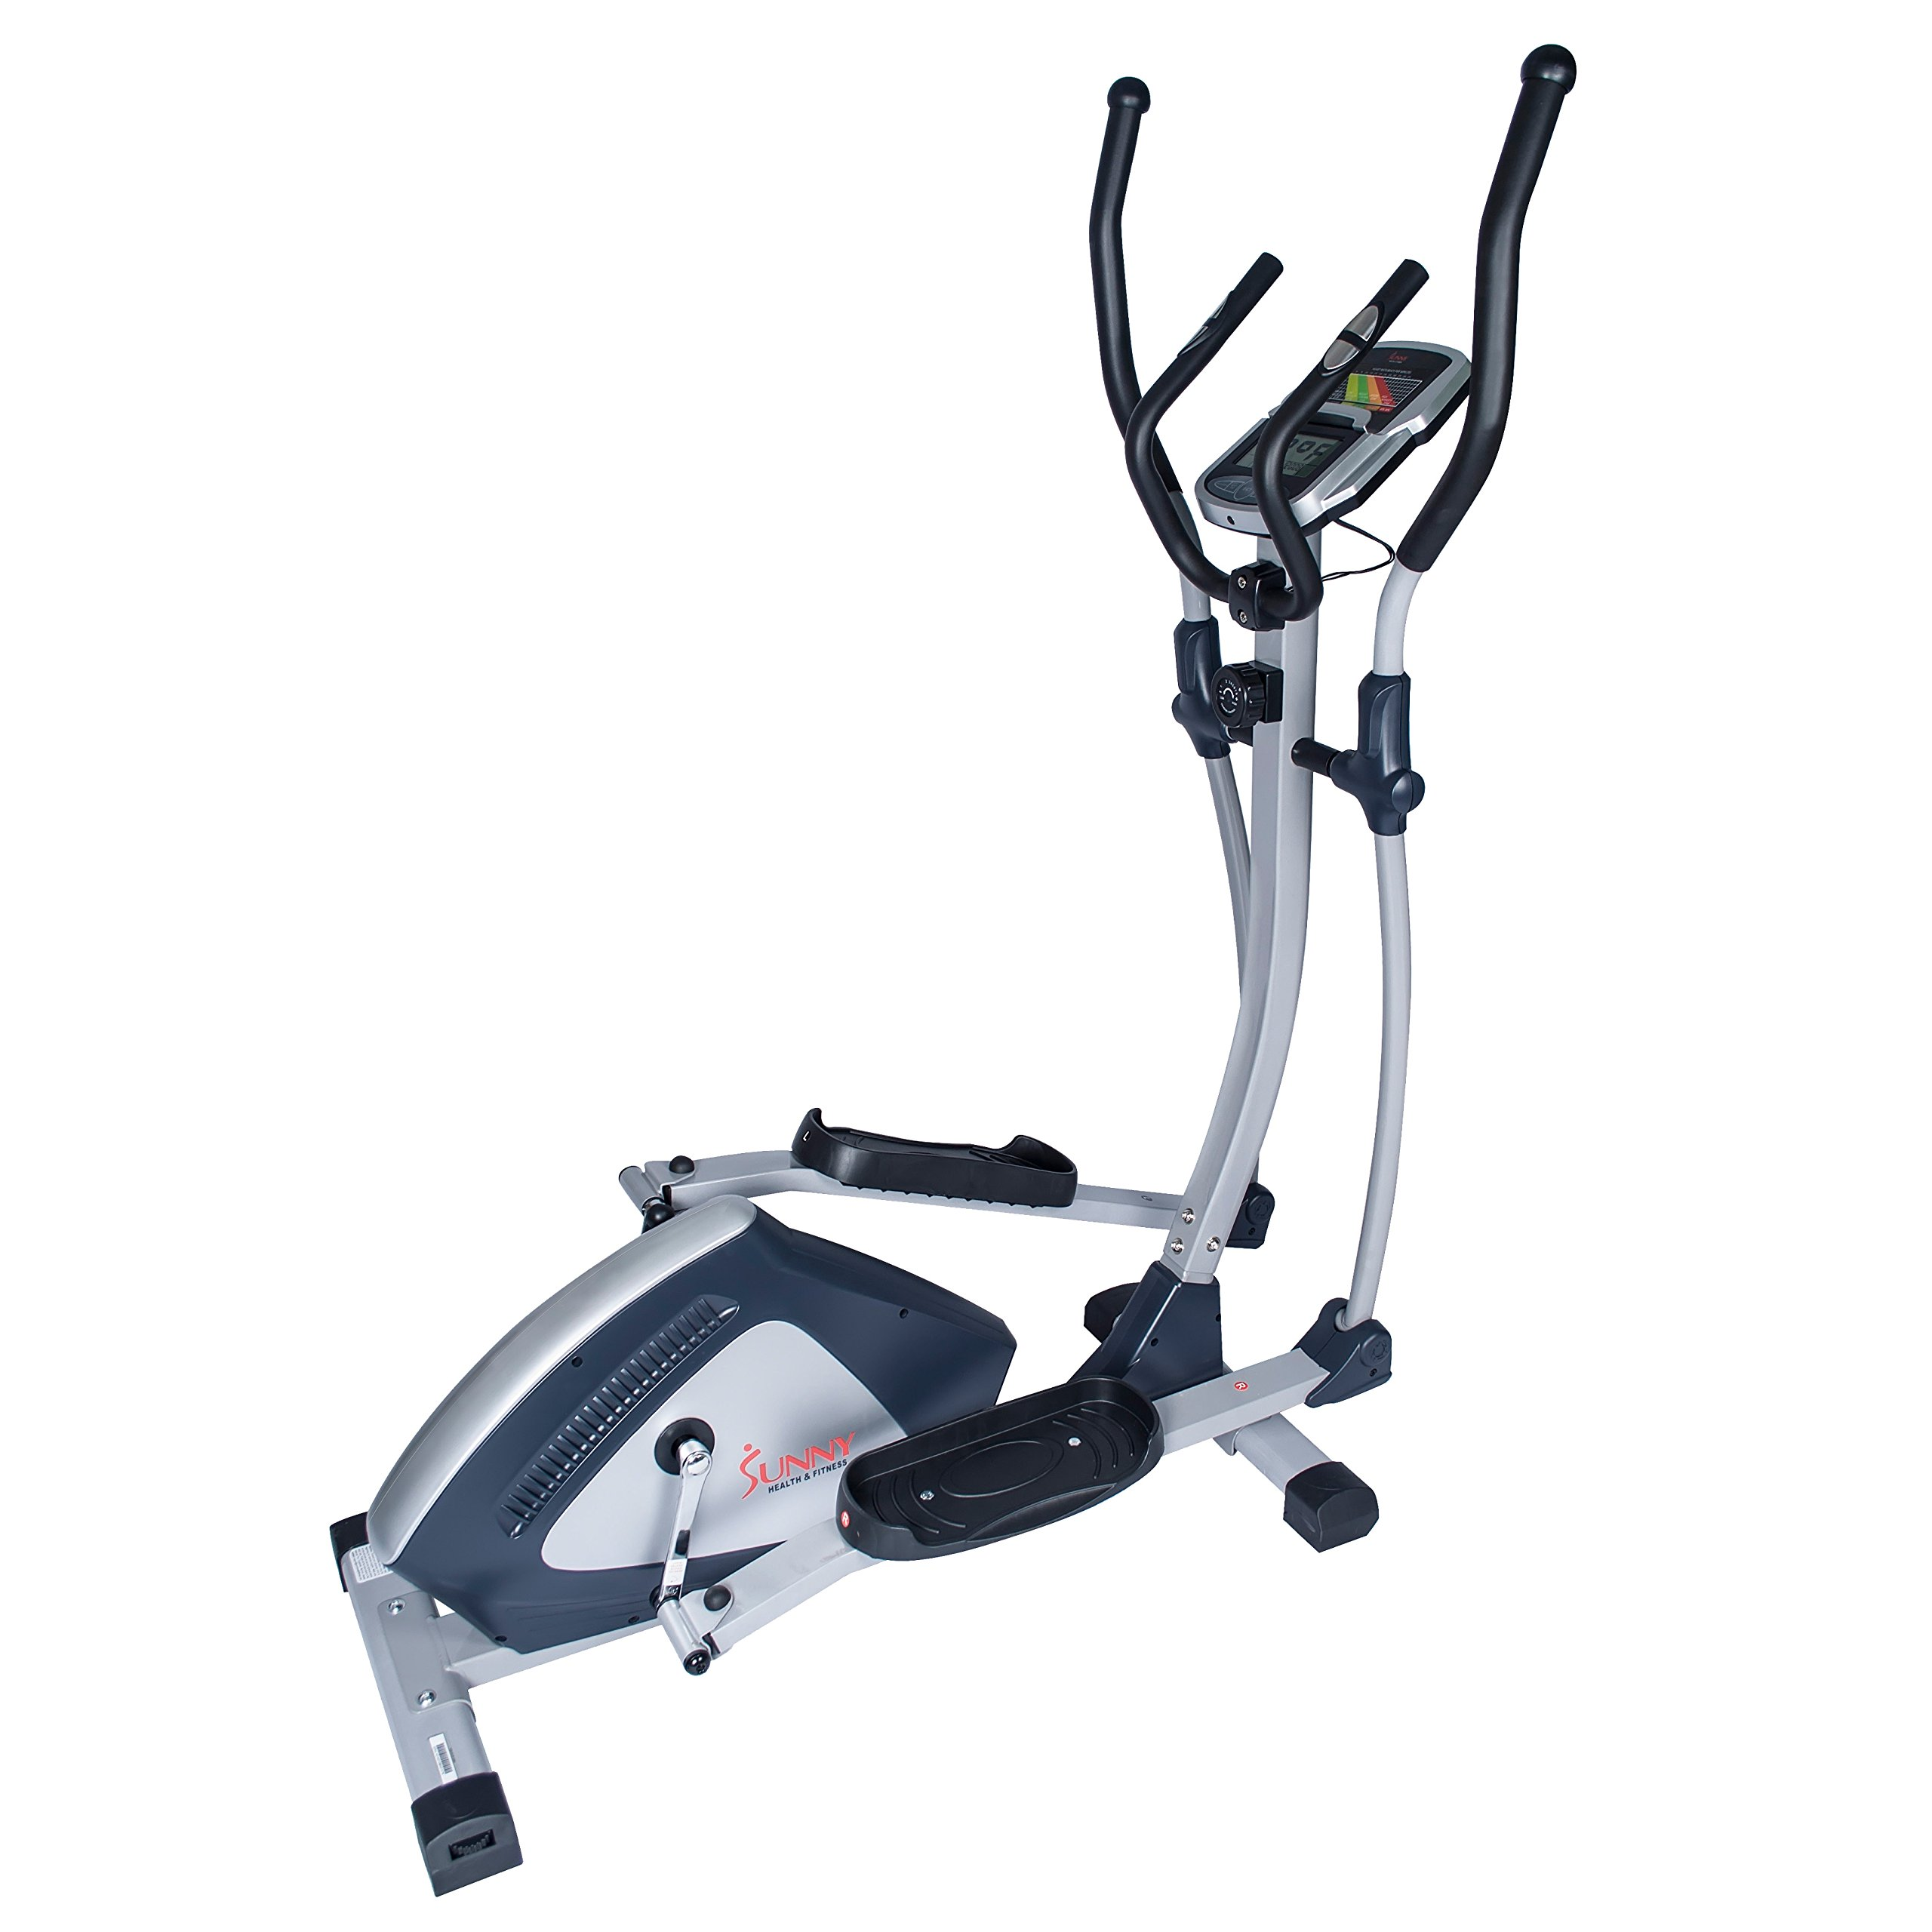 Sunny Health & Fitness Magnetic Elliptical Trainer Elliptical Machine w/  LCD Monitor and Heart Rate Monitoring - Endurance Zone - SF-E3804 by Sunny Health & Fitness (Image #2)